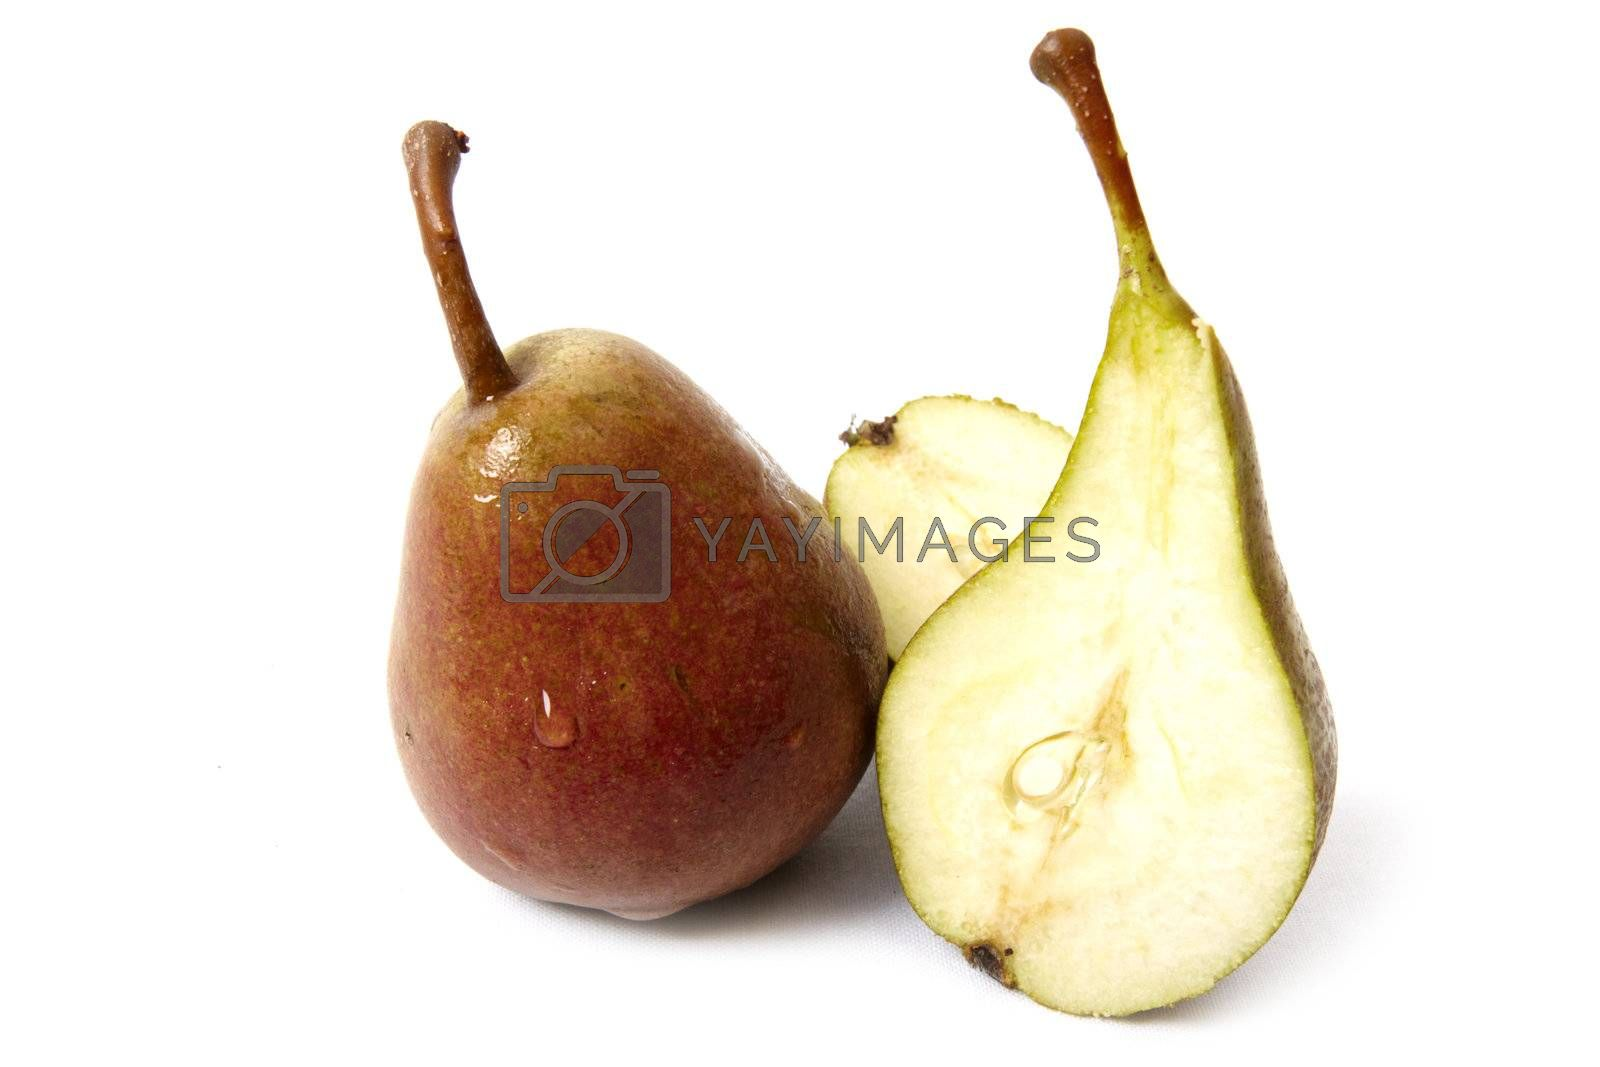 Sliced ripe pear isolated on white background. Photo taken in august, 2009